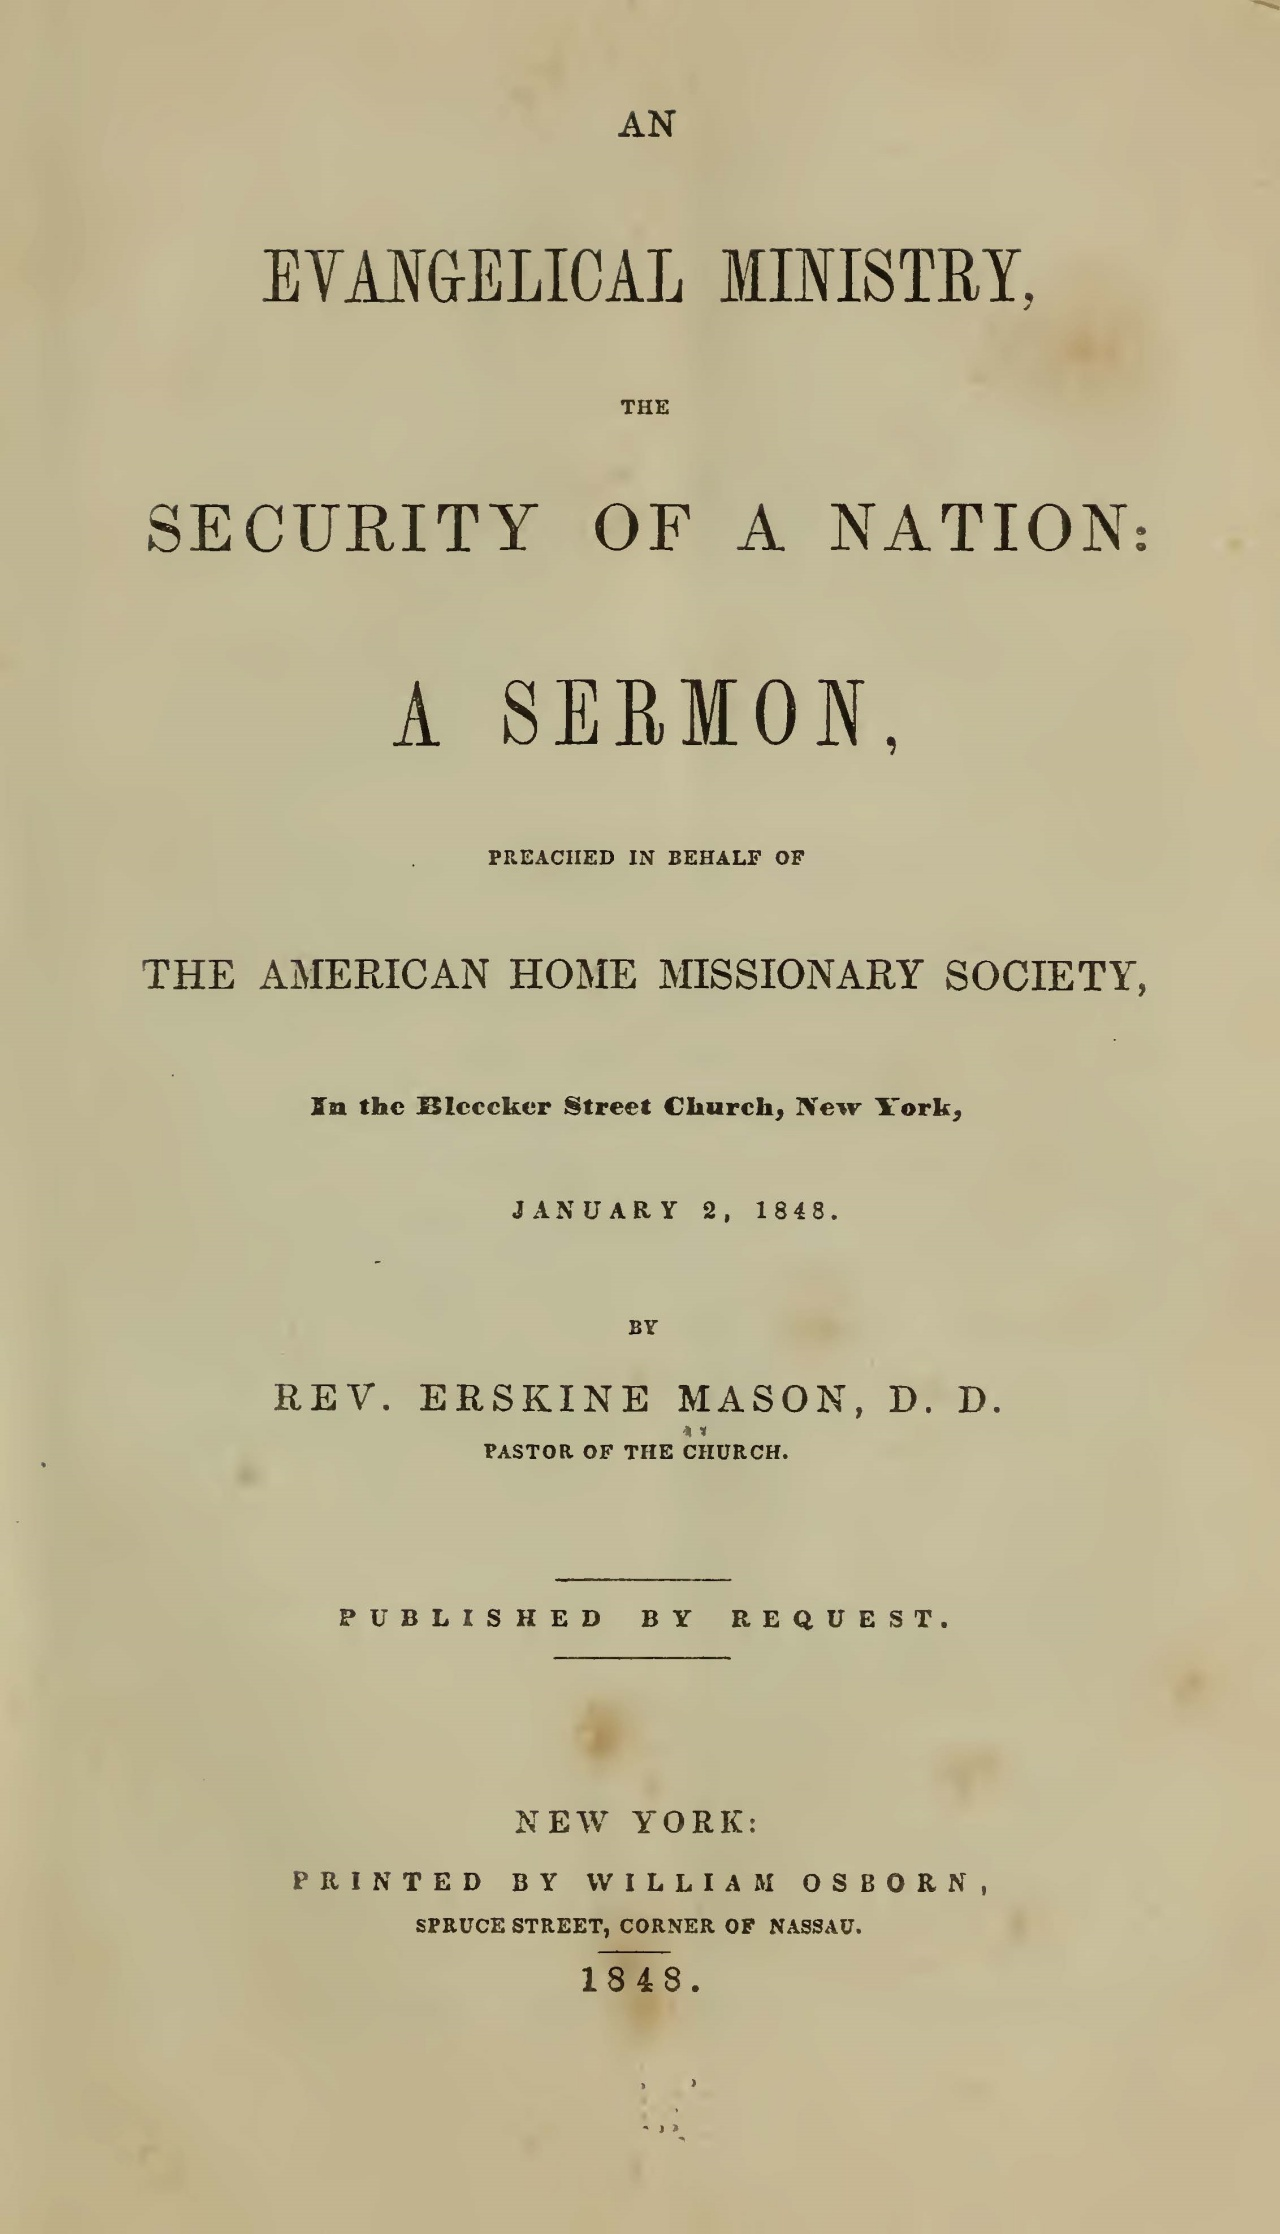 Mason, Sr., Erskine, An Evangelical Ministry, the Security of a Nation Title Page.jpg